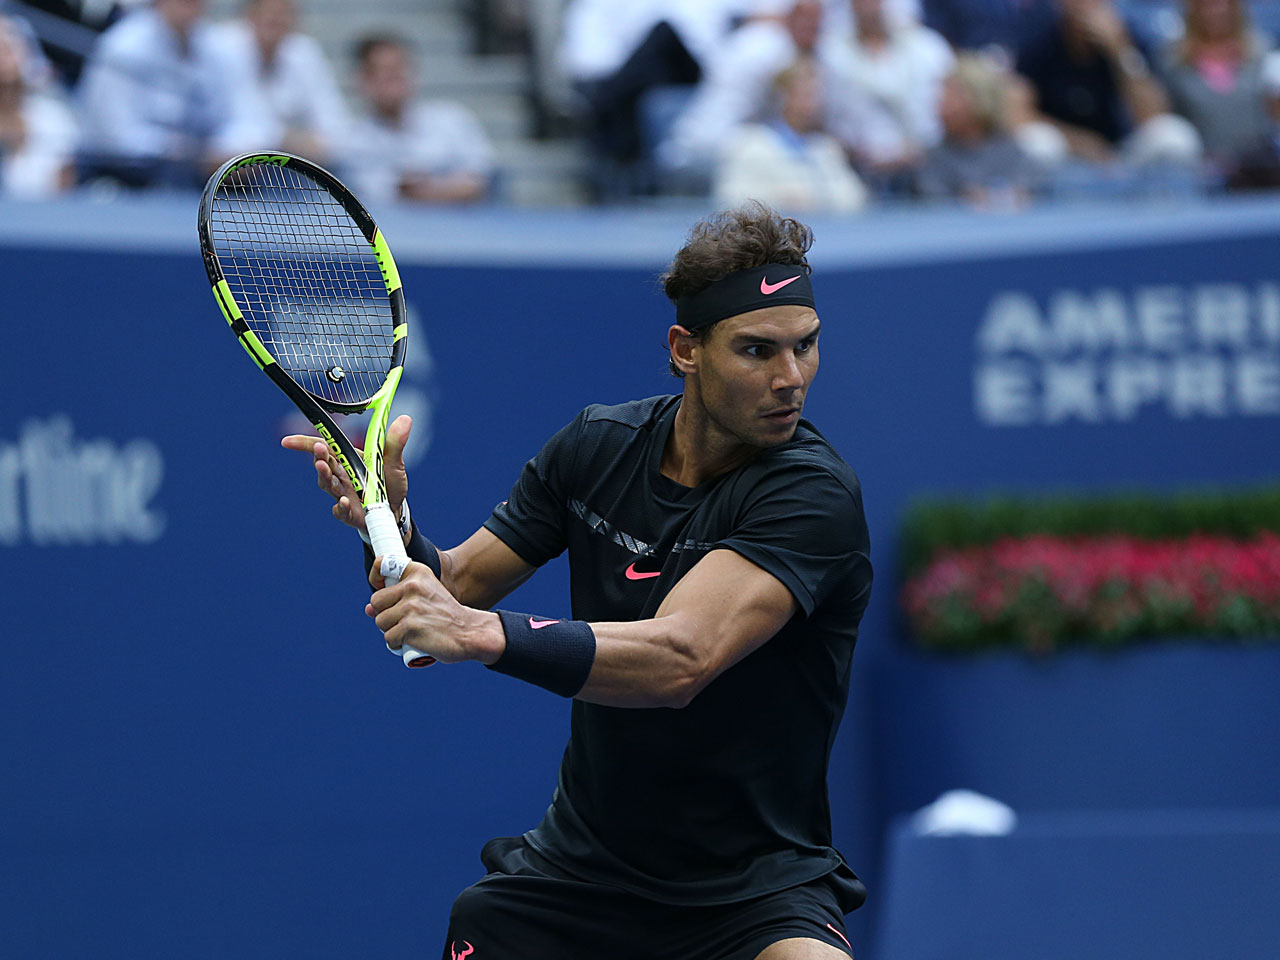 Rafael Nadal Interview On Training Staying Fit And Winning Grand Slams